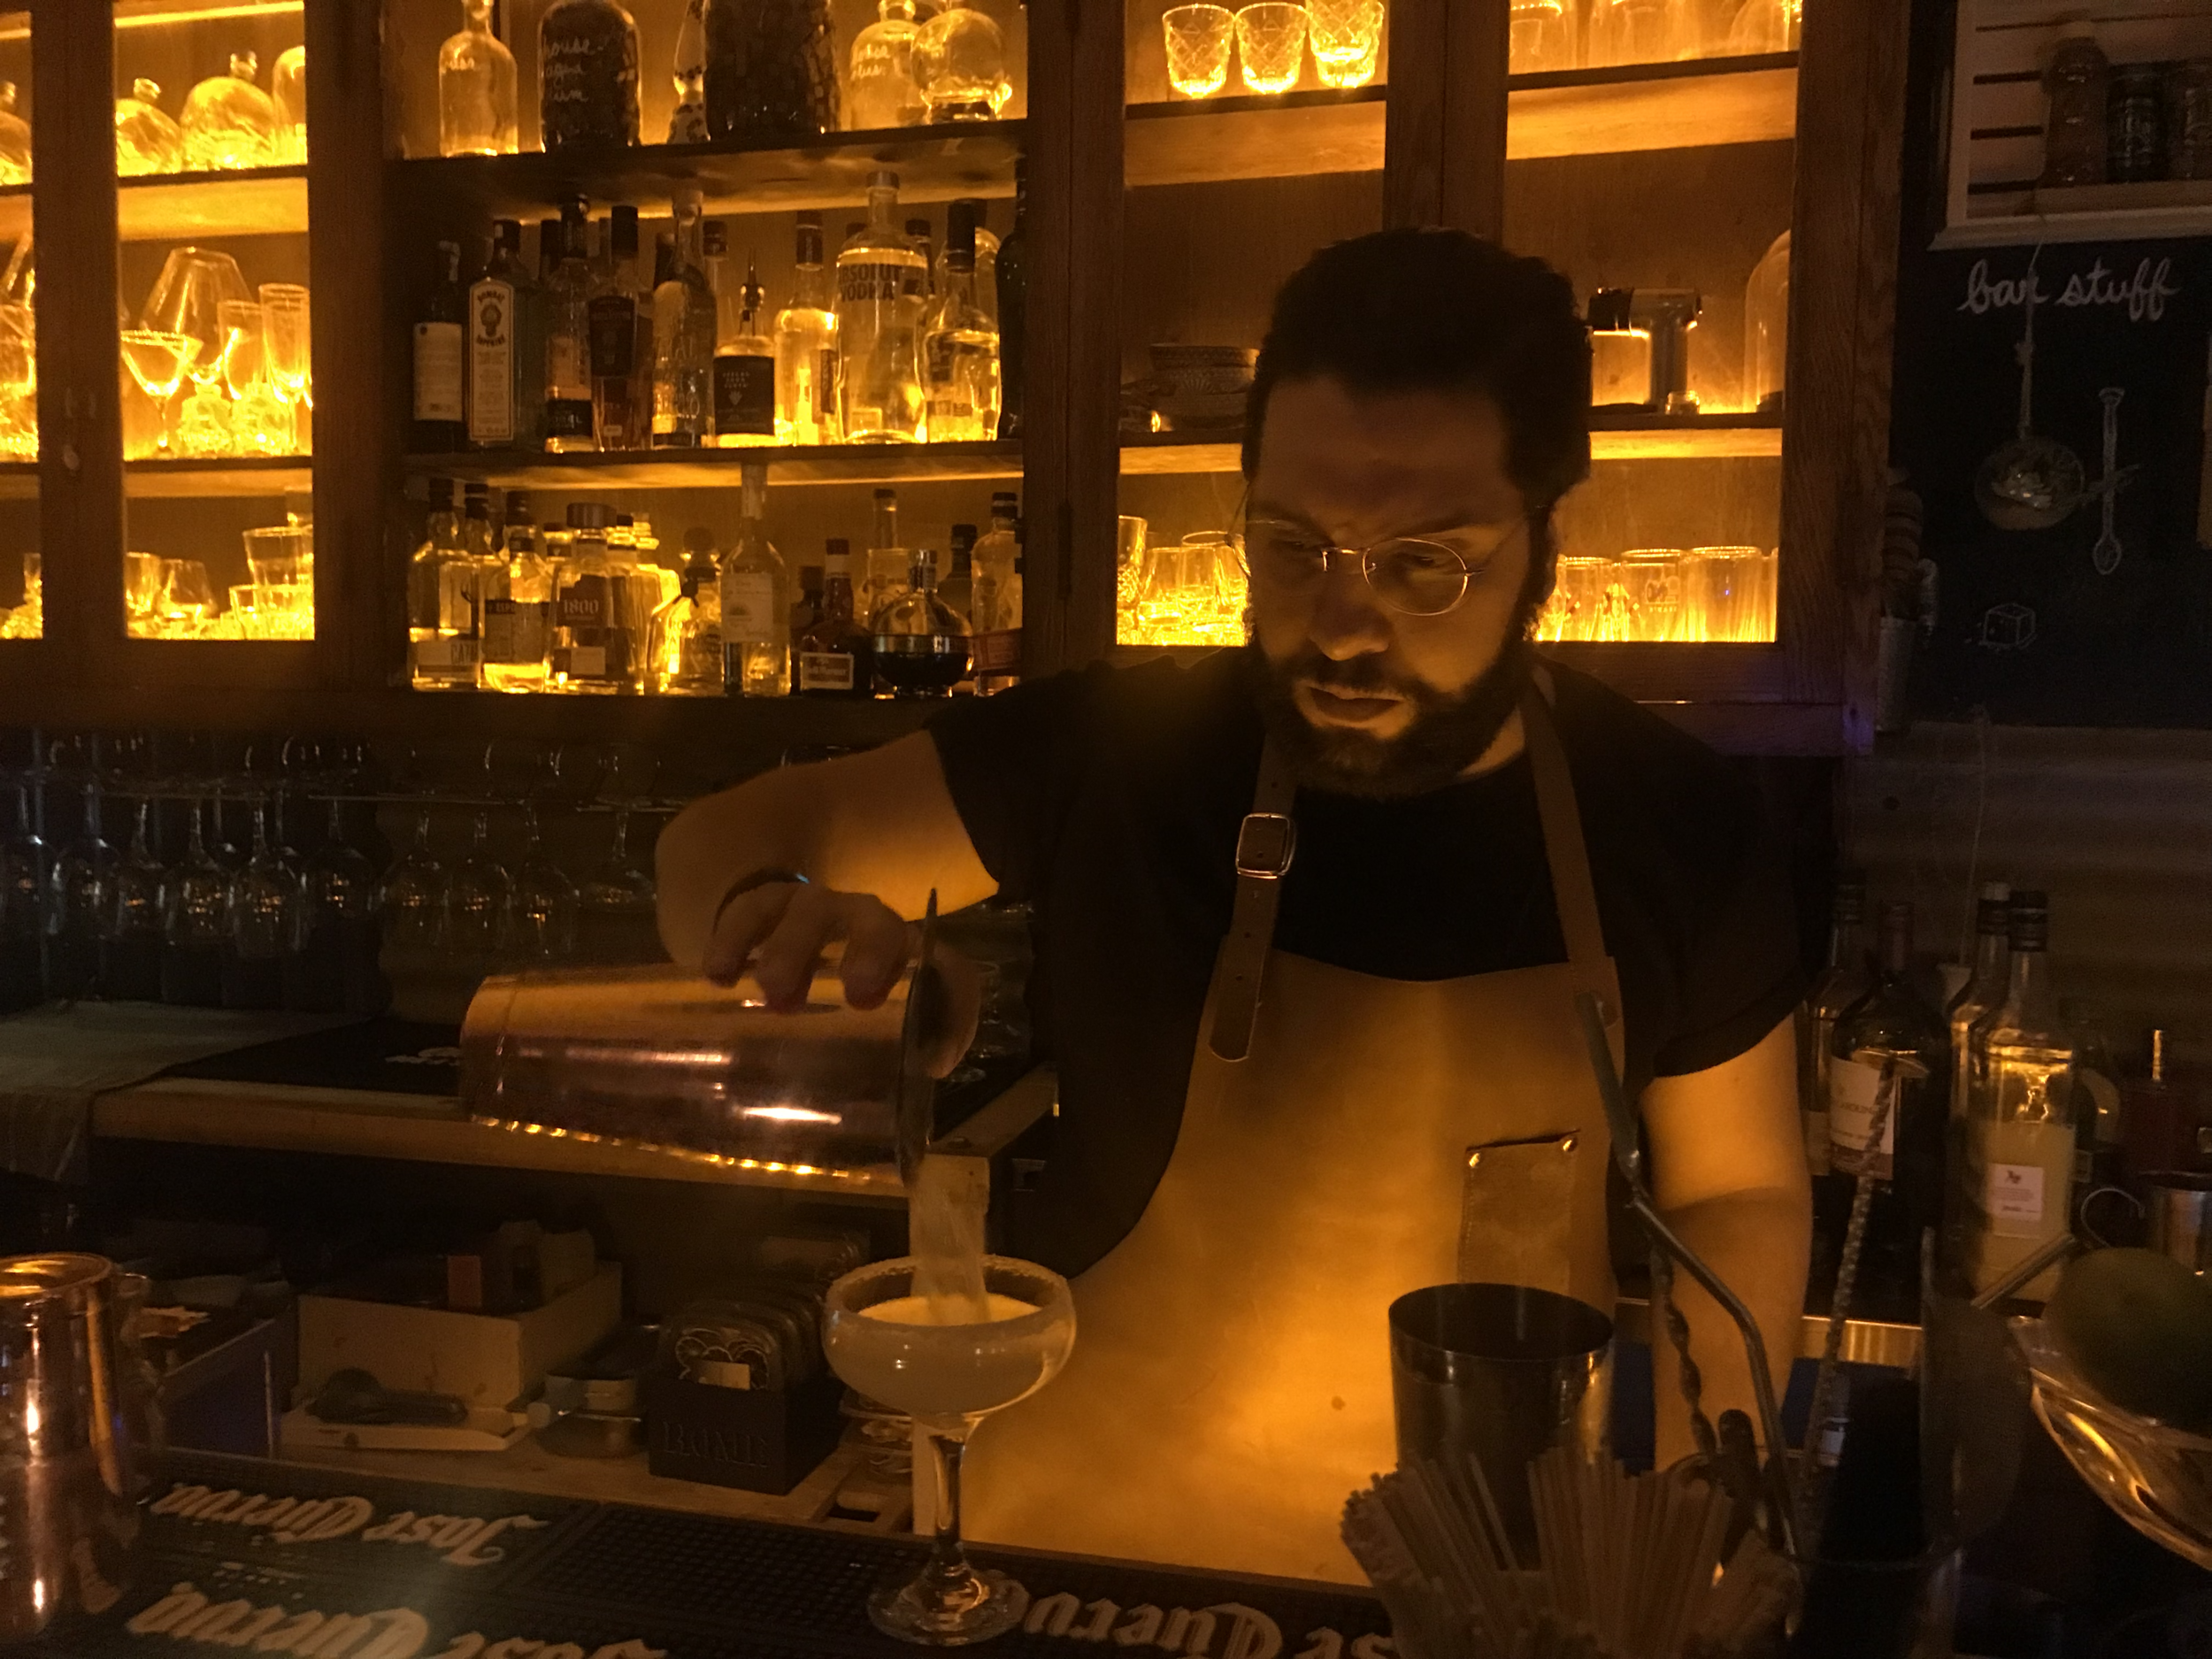 Rafael Bastidas, who immigrated to Canada from Venezuela, currently works as the general manager of Fonda Lola. He is in charge of the front of house operations, and is also the in-house mixologist. (CanCulture/Sophie Chong)